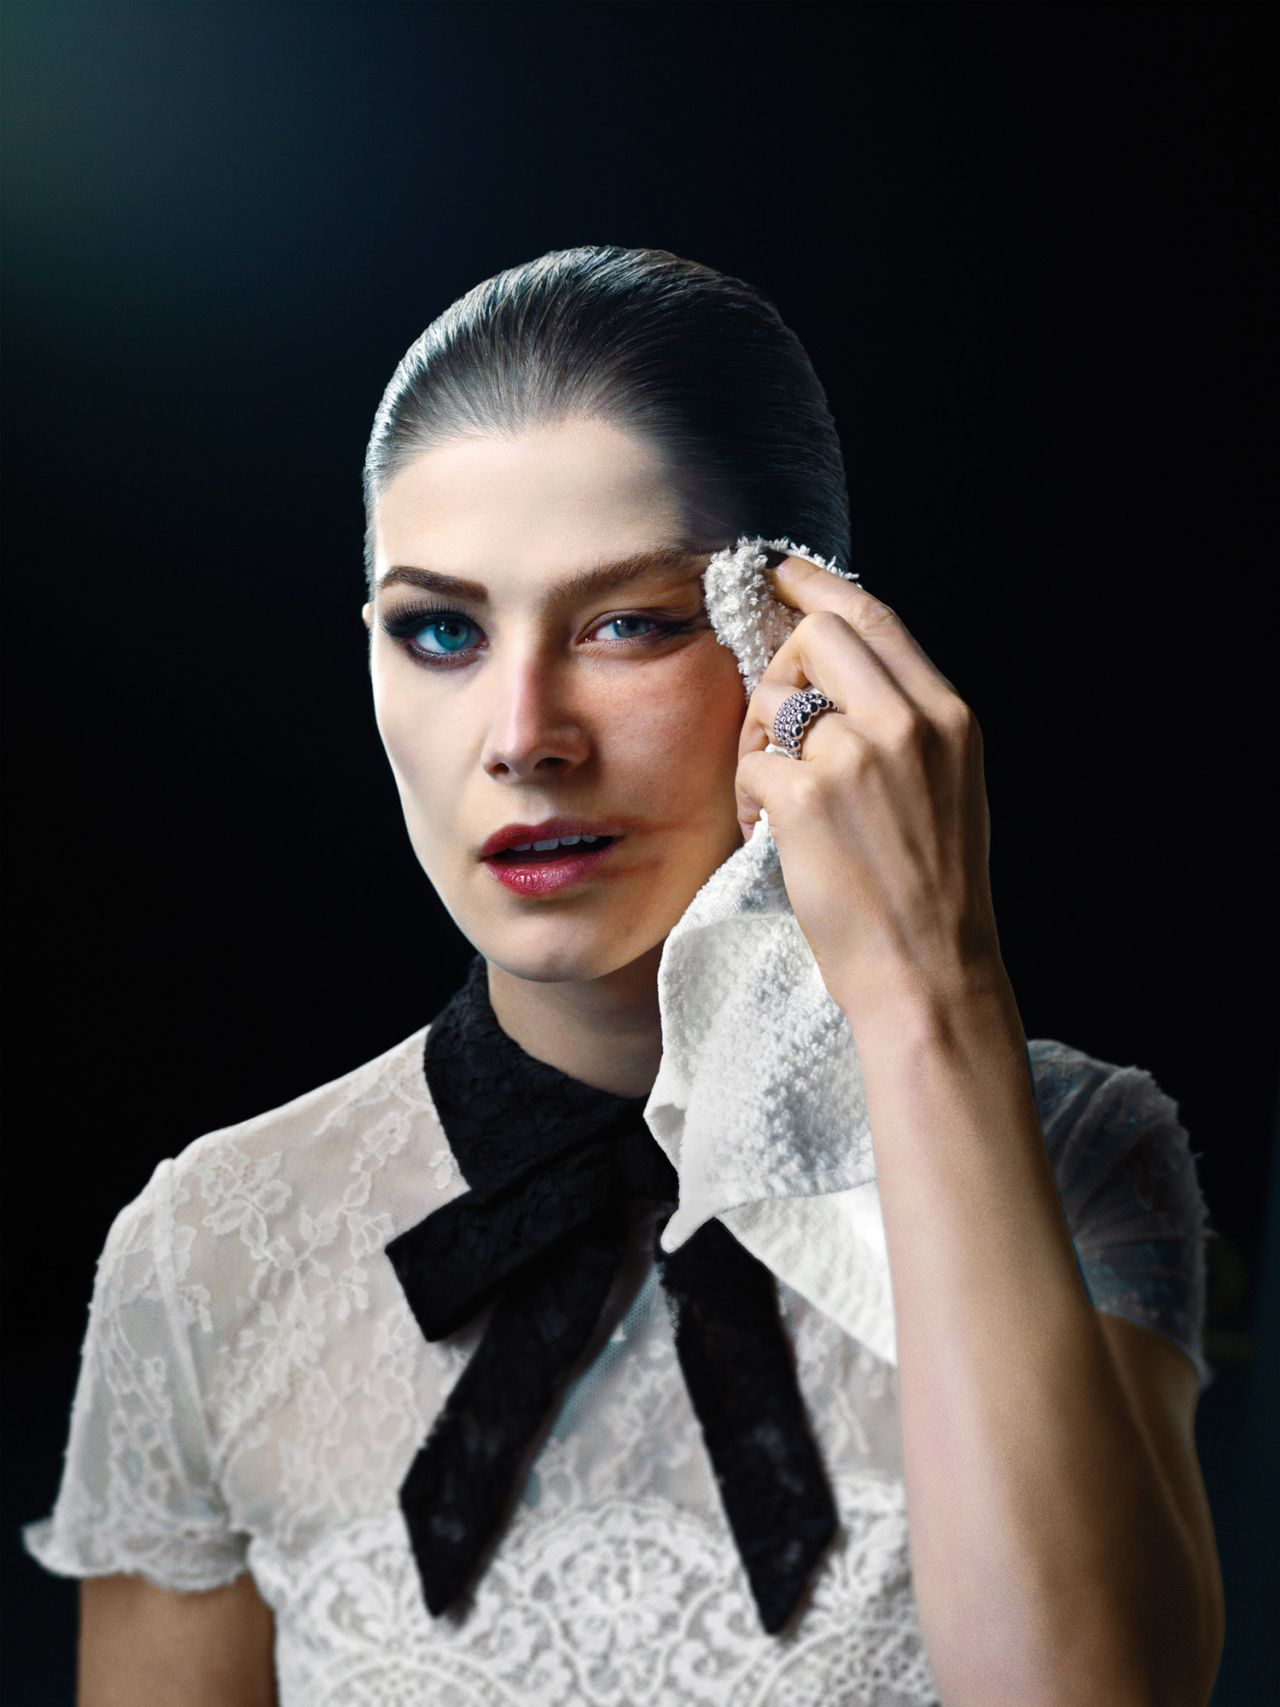 Rosamund Pike - W Magazine May 2014 Issue Photoshoot